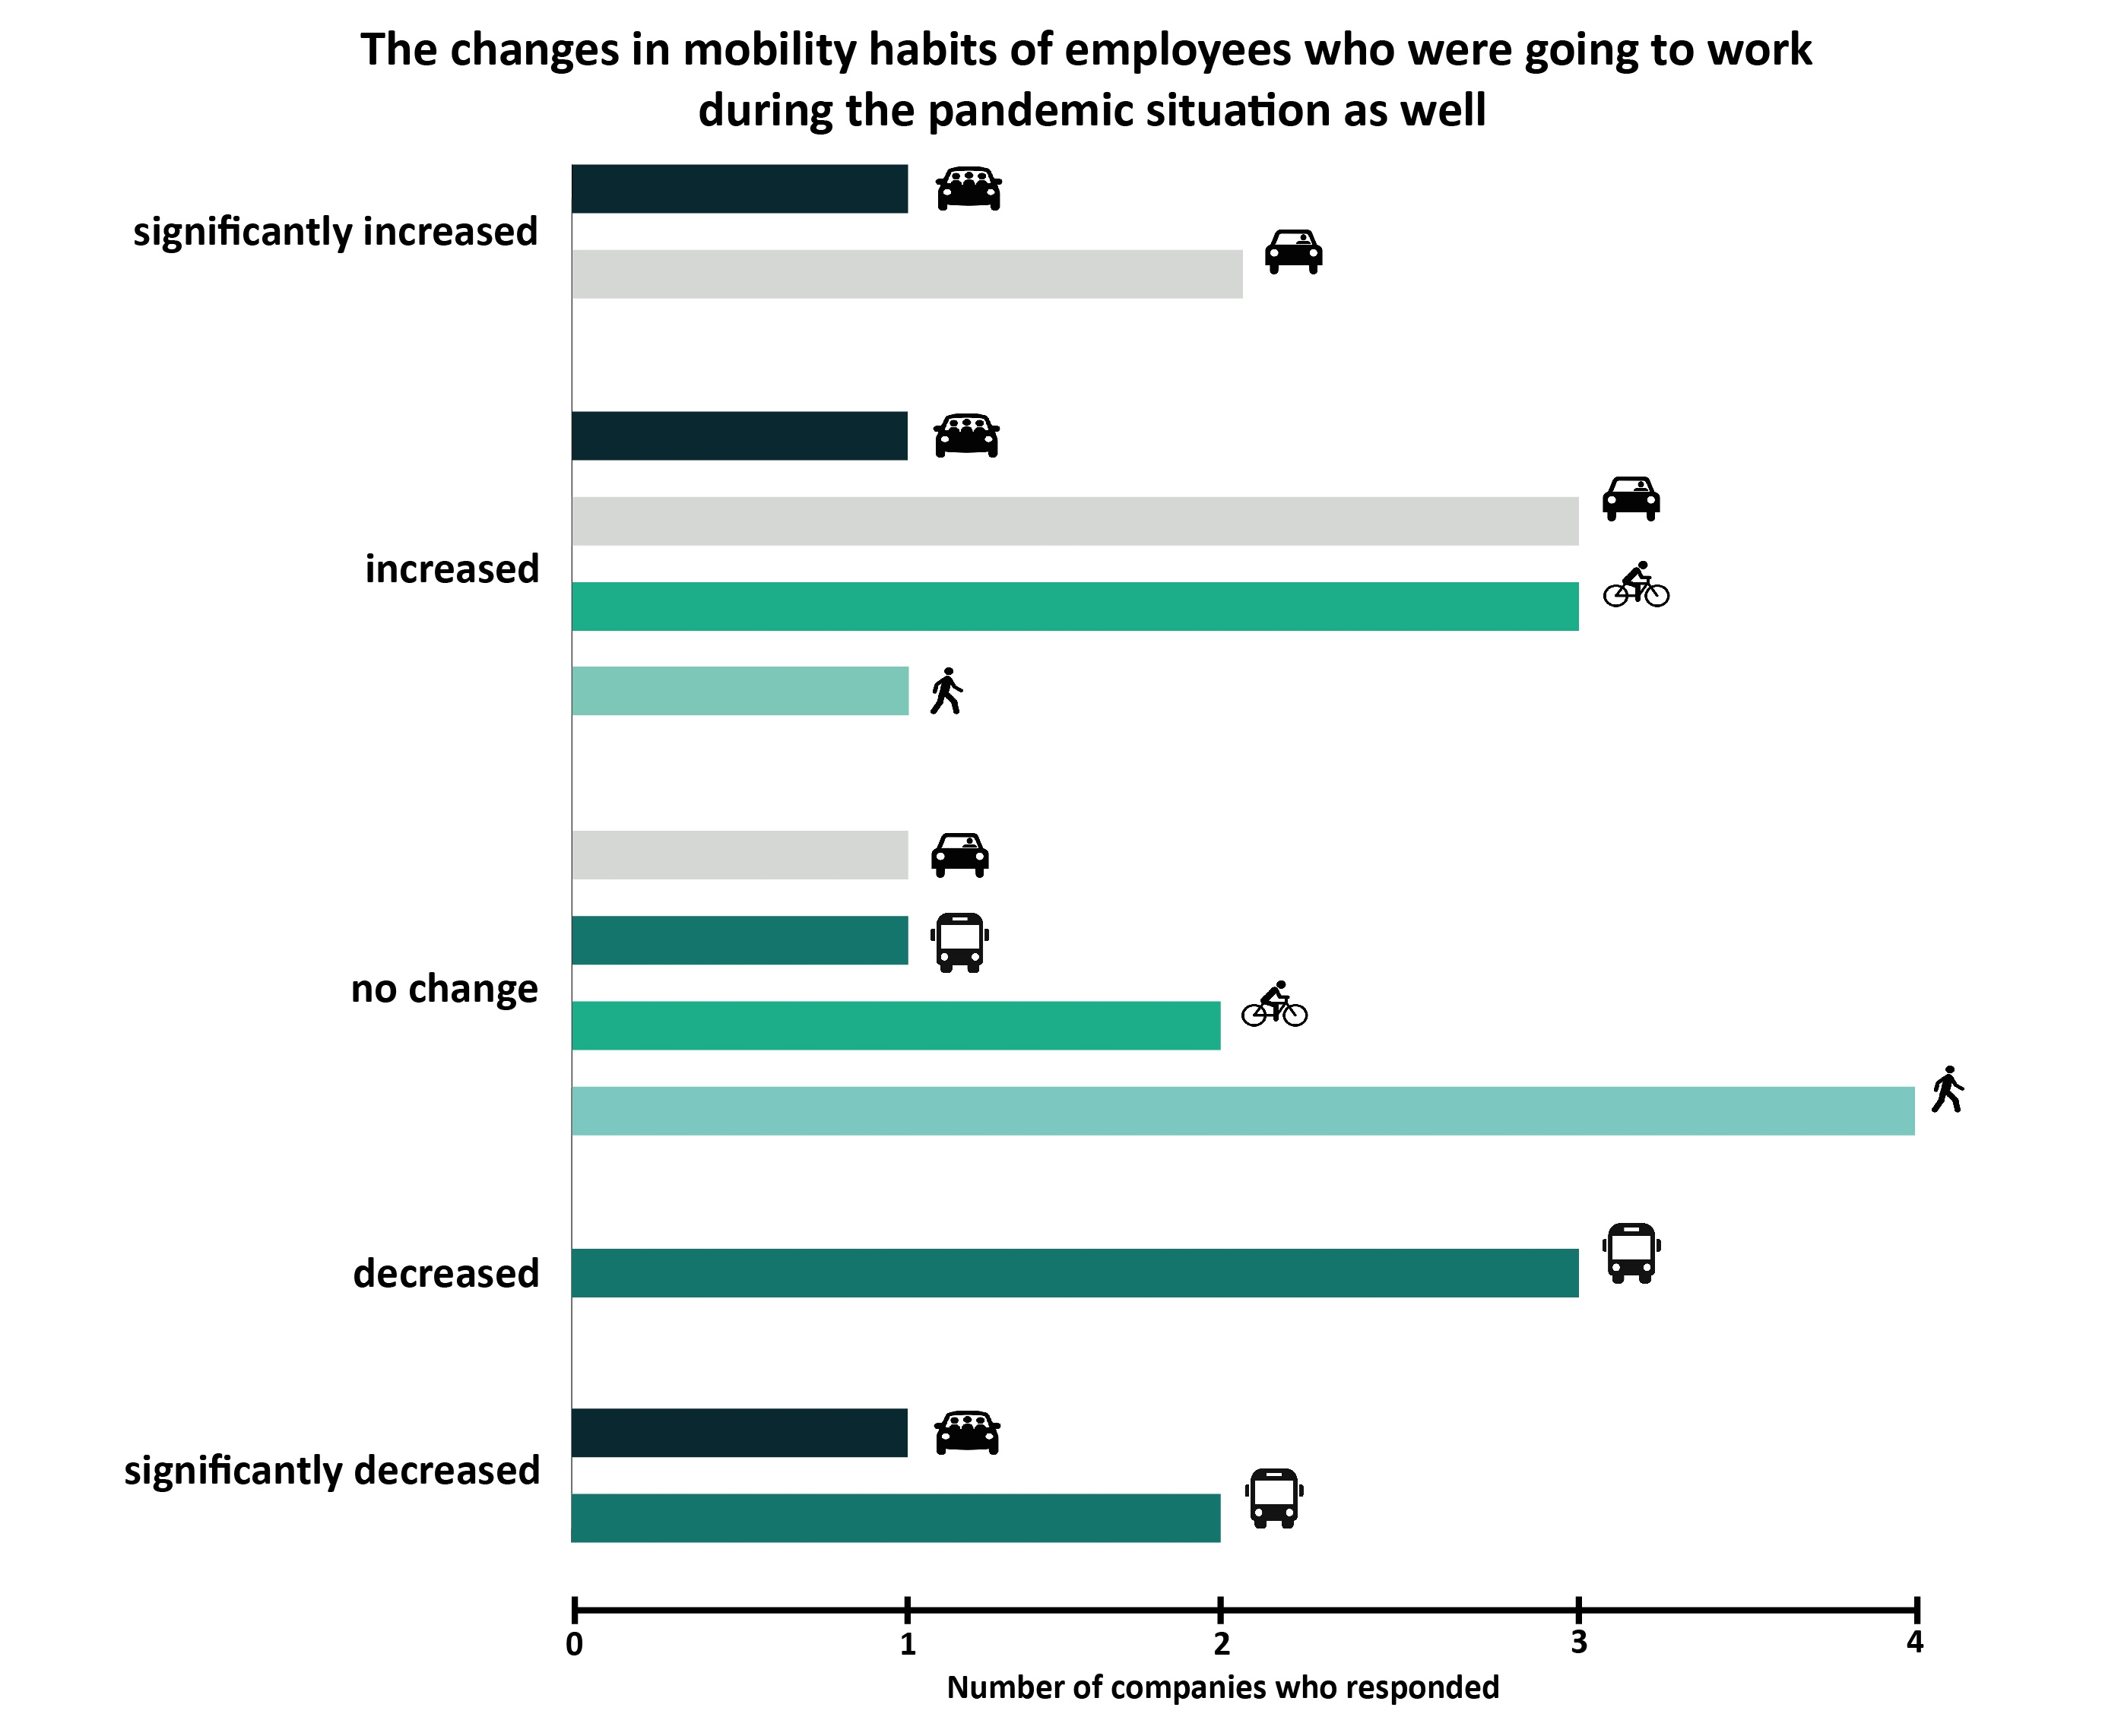 The changes in mobility habits of employees who were going to work during the pandemic situation as well